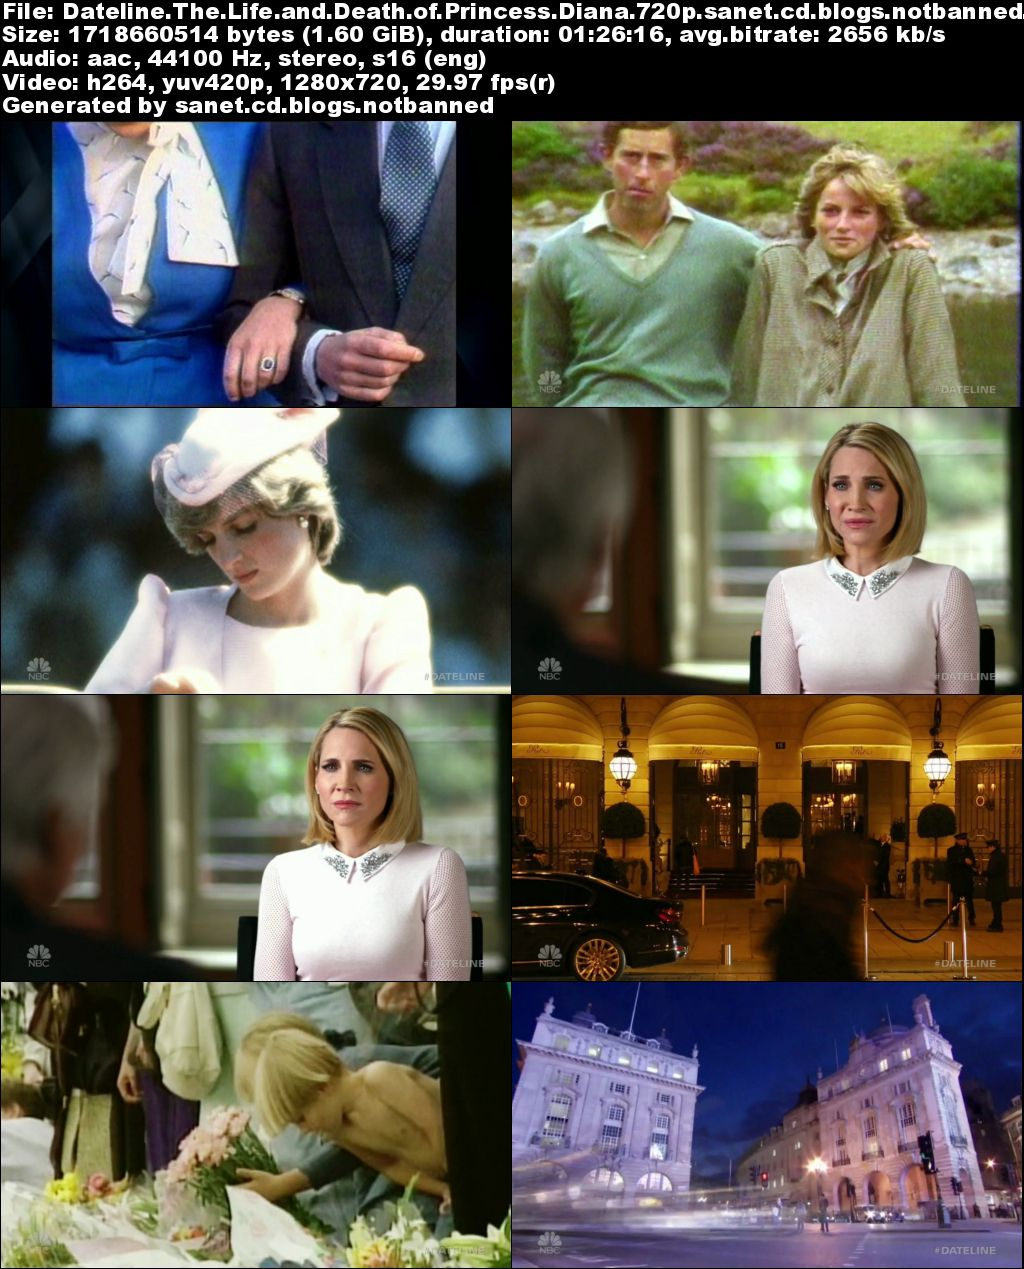 the life and death of princess diana